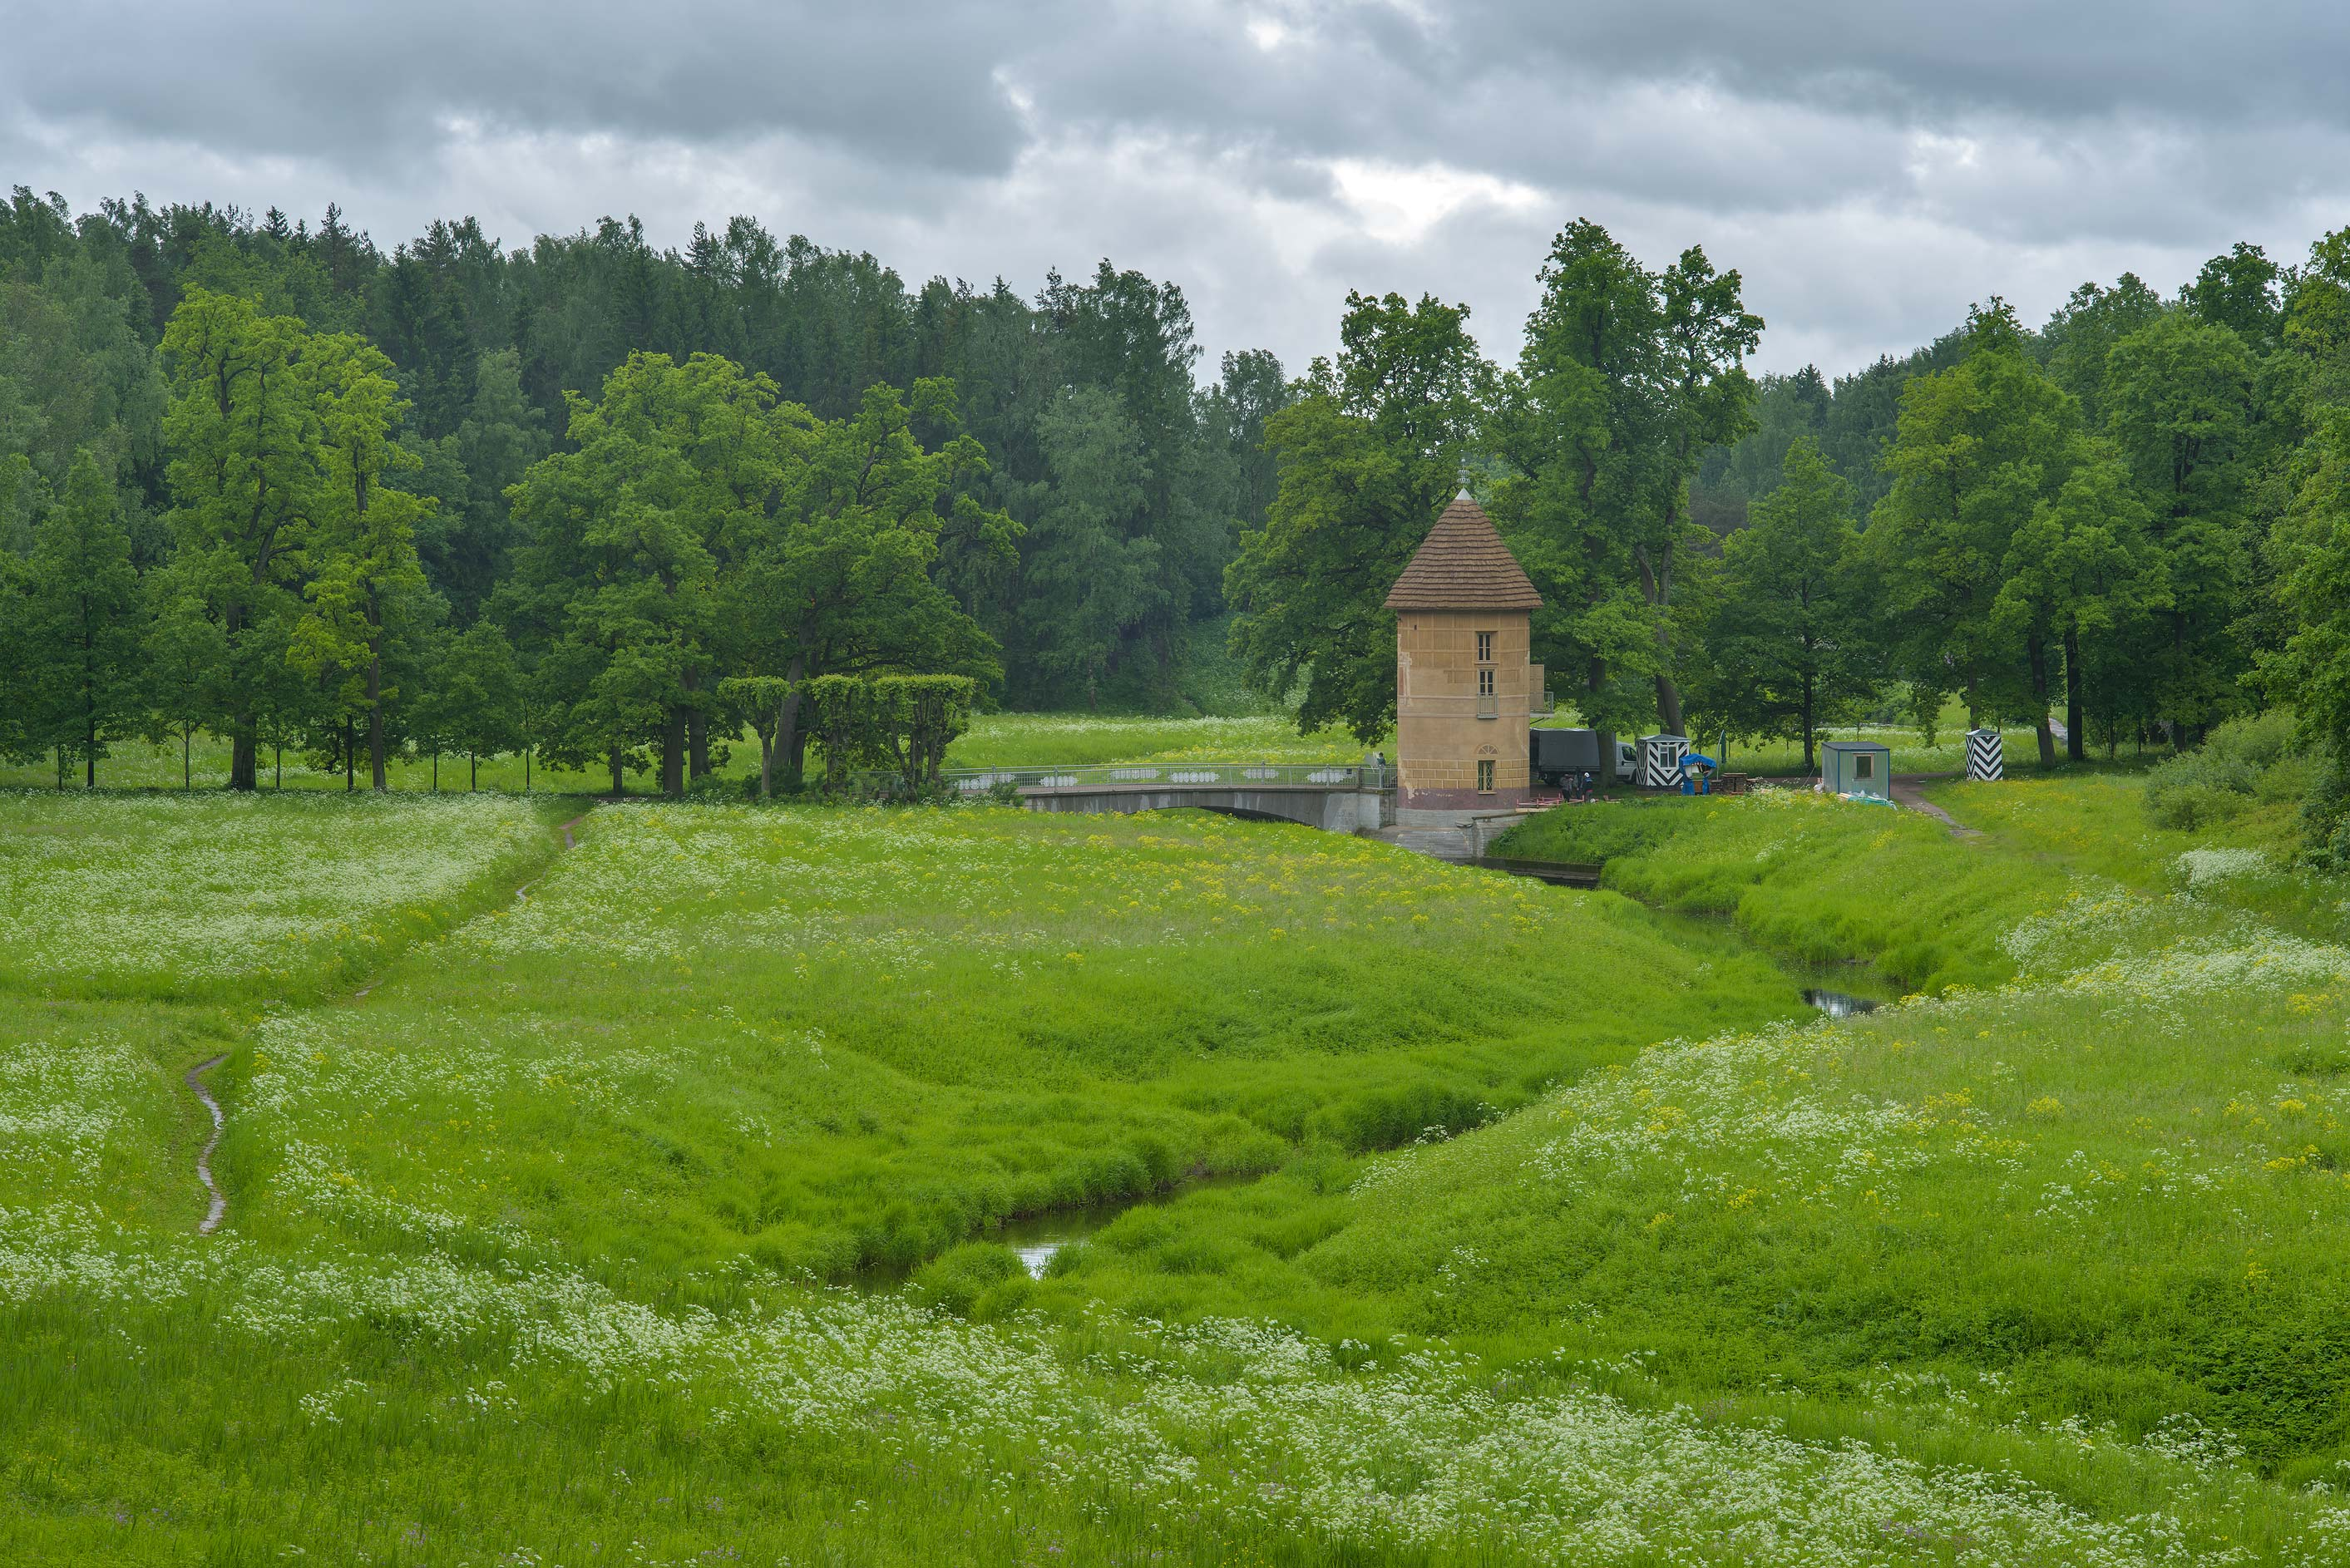 Pil Basnia Tower at Slavyanka River in Pavlovsk...a suburb of St.Petersburg, Russia